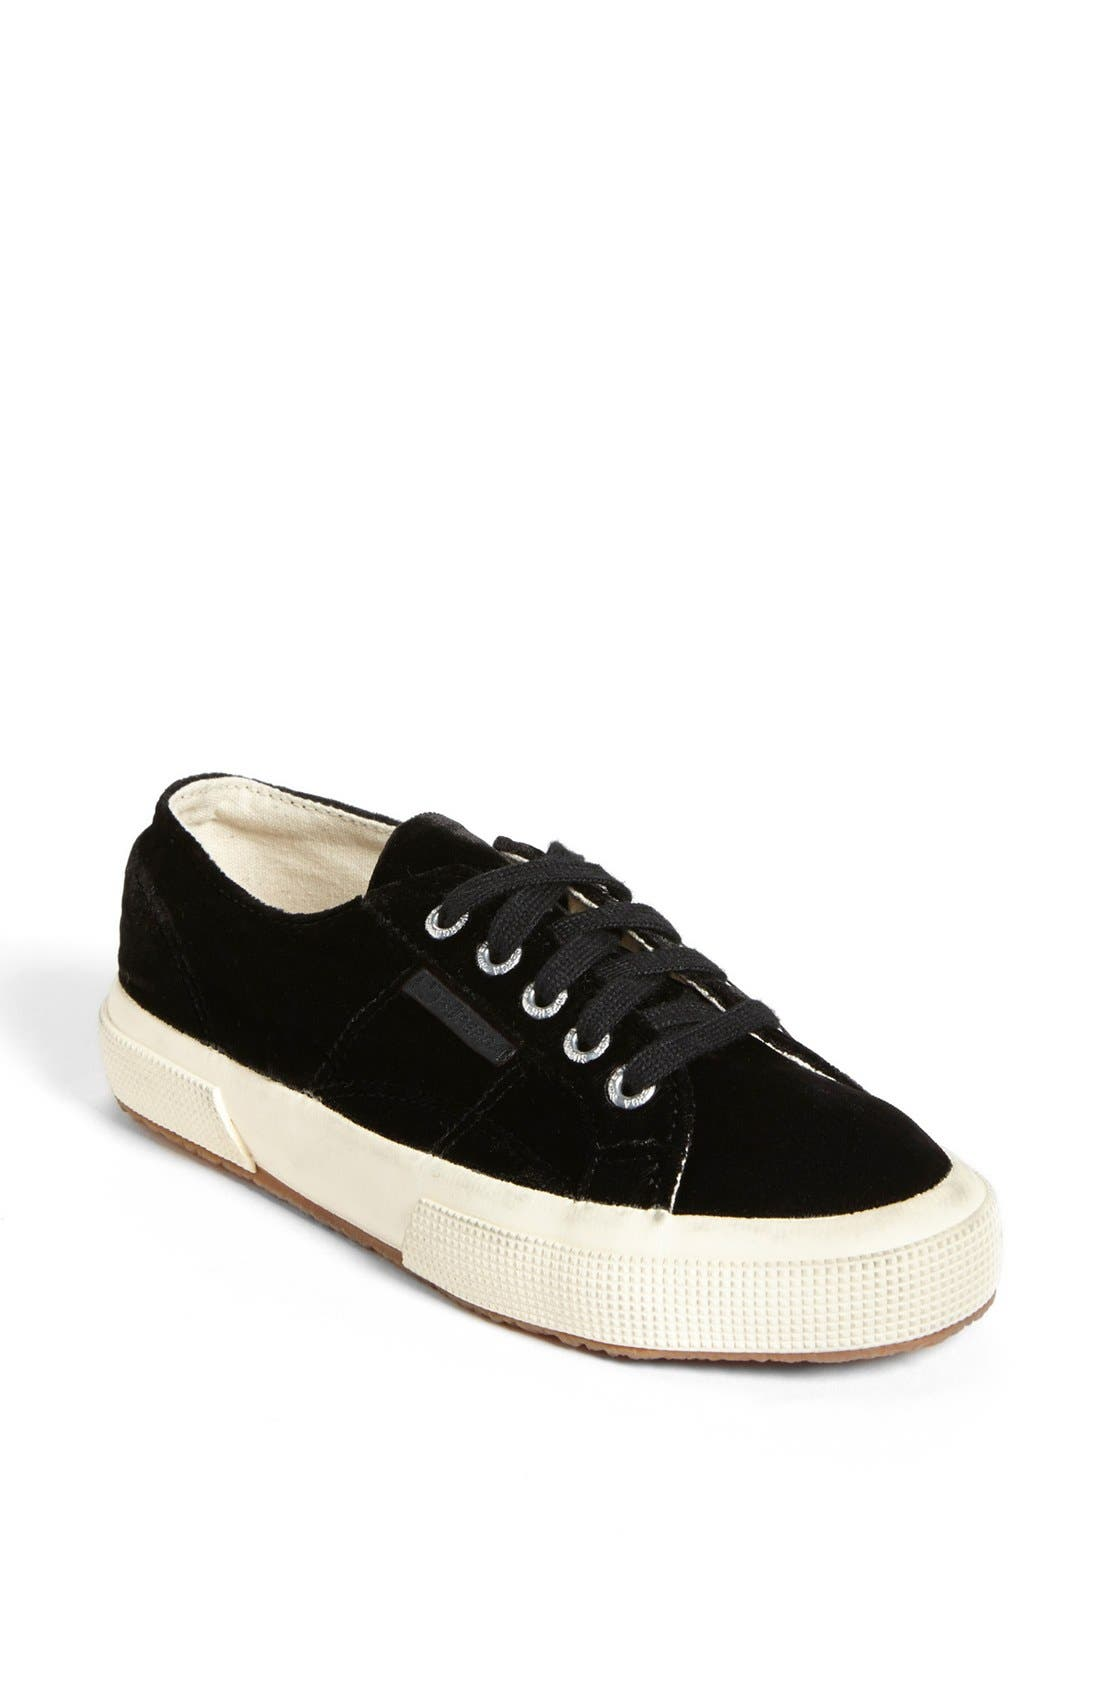 Alternate Image 1 Selected - Superga Velvet Sneaker (Women) (Limited Edition)